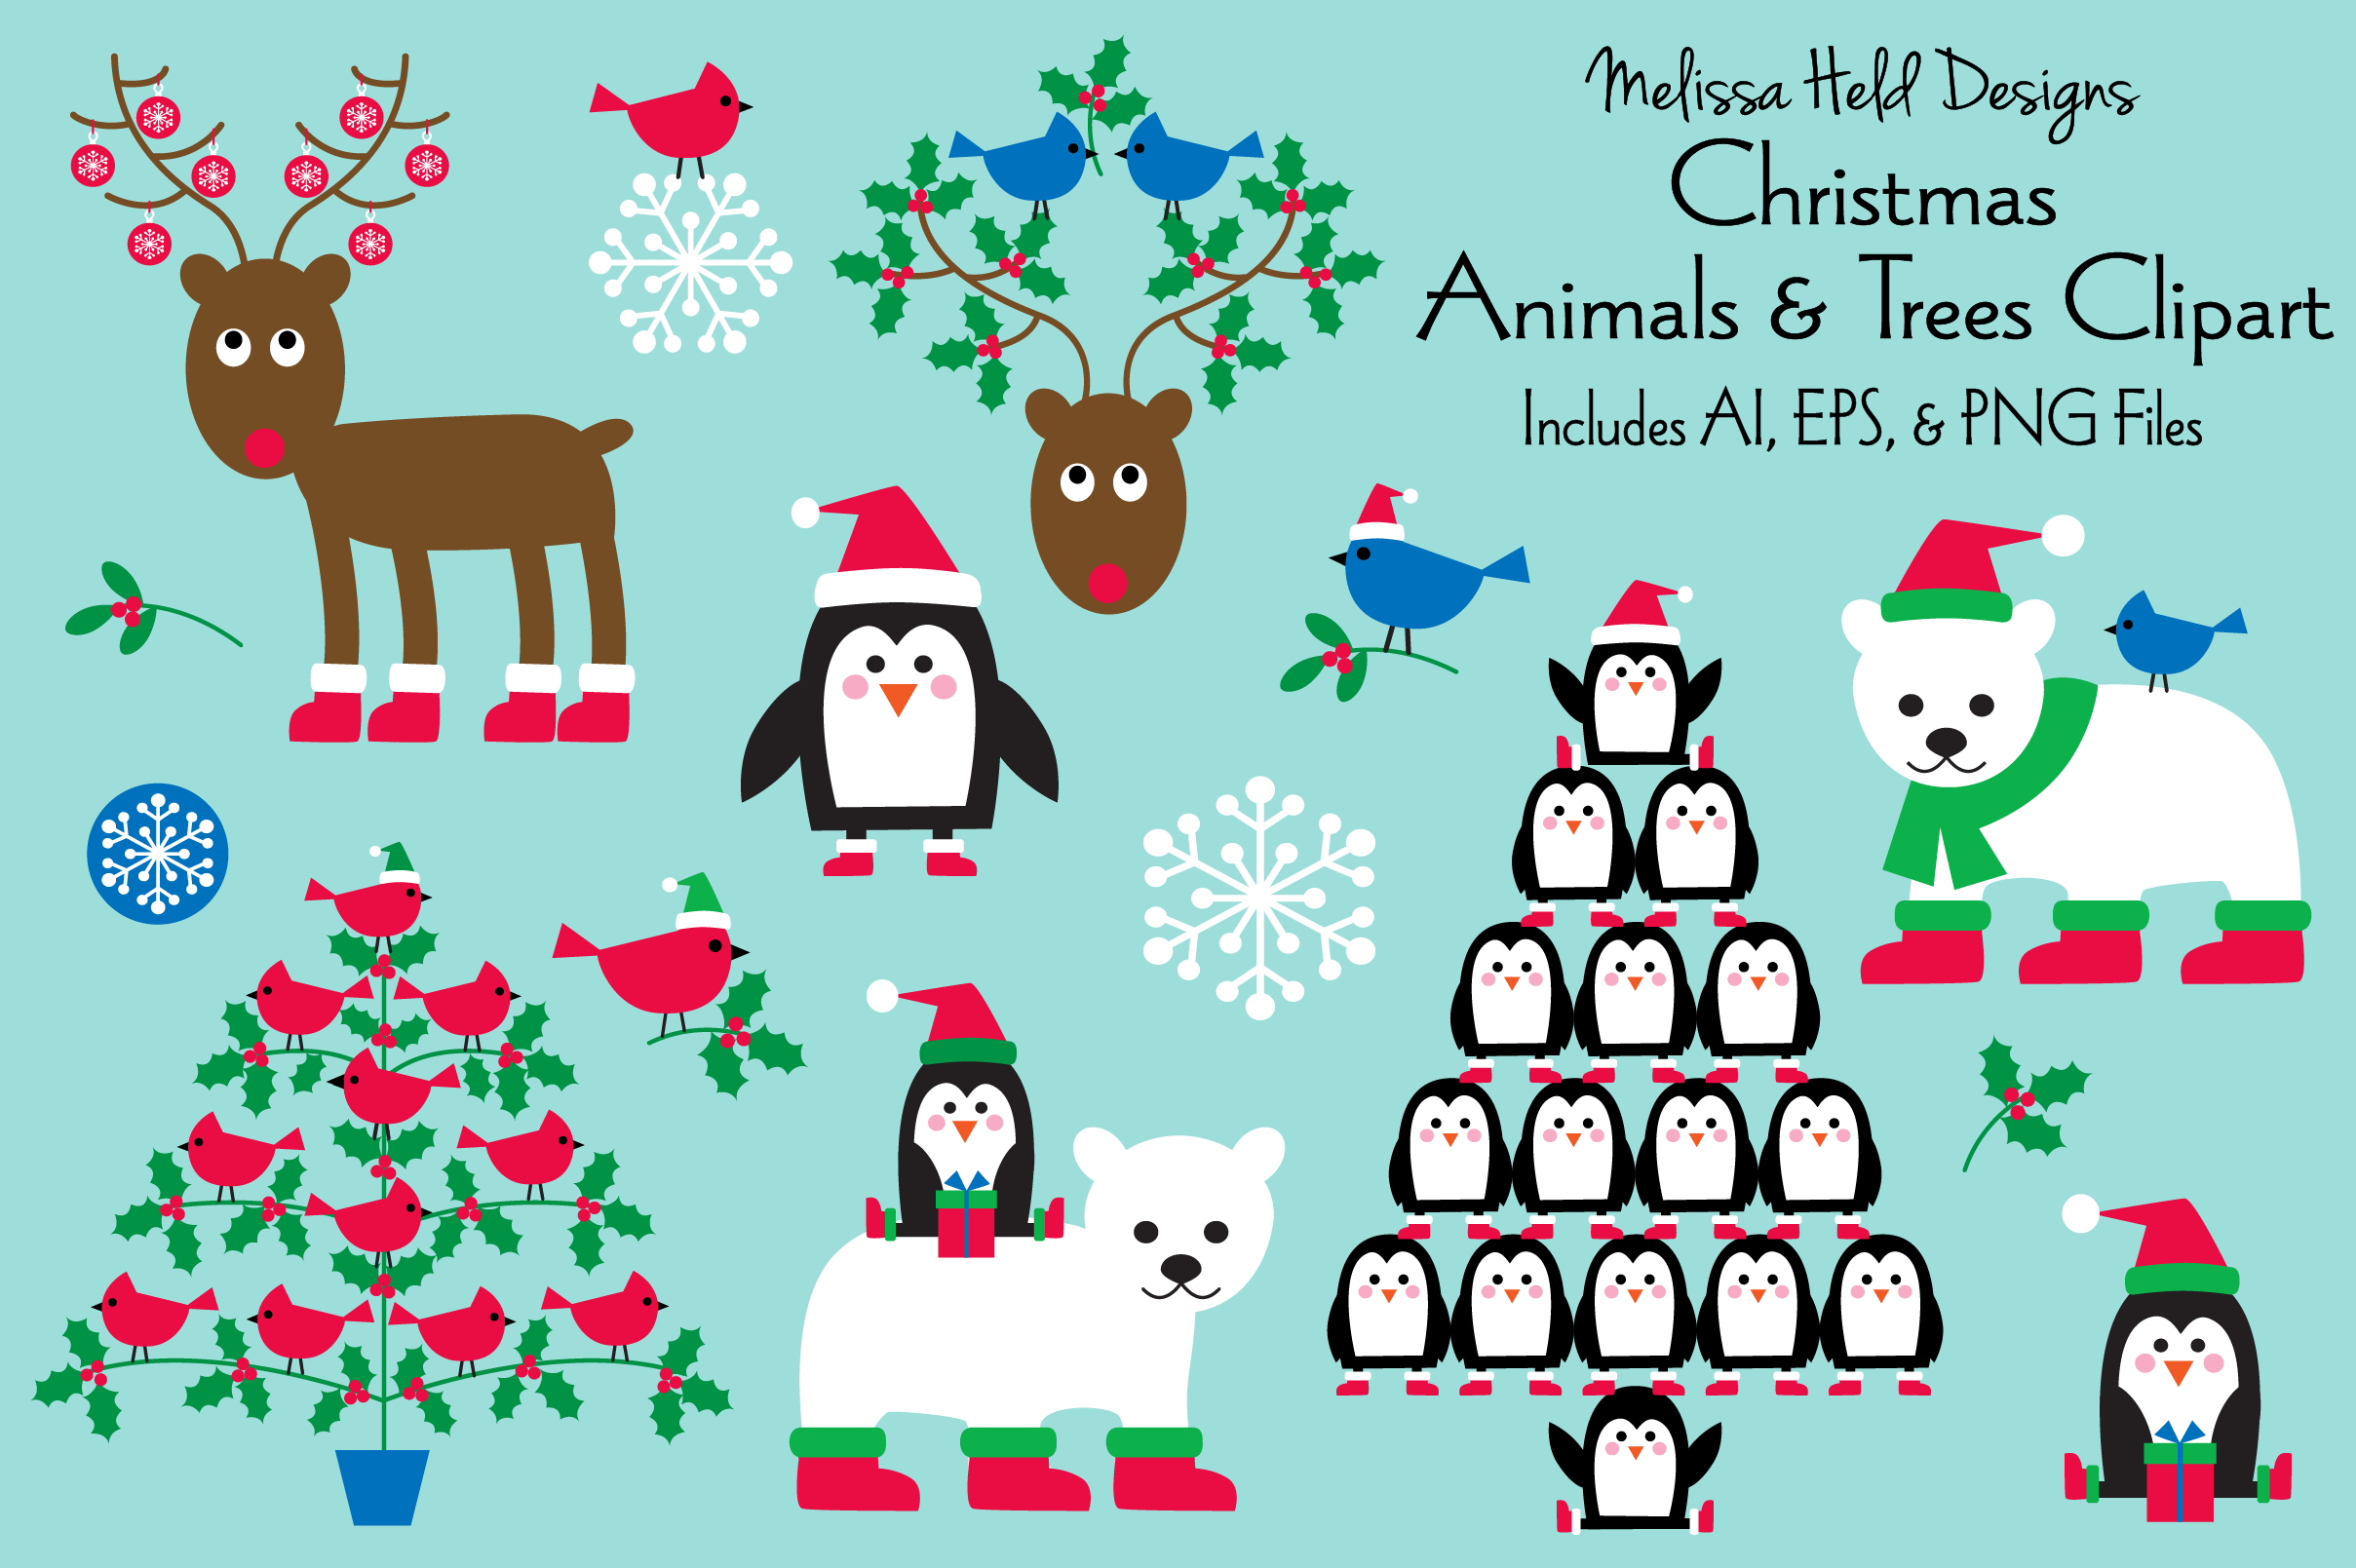 Christmas Animals Trees Clipart By Melissa Held Designs